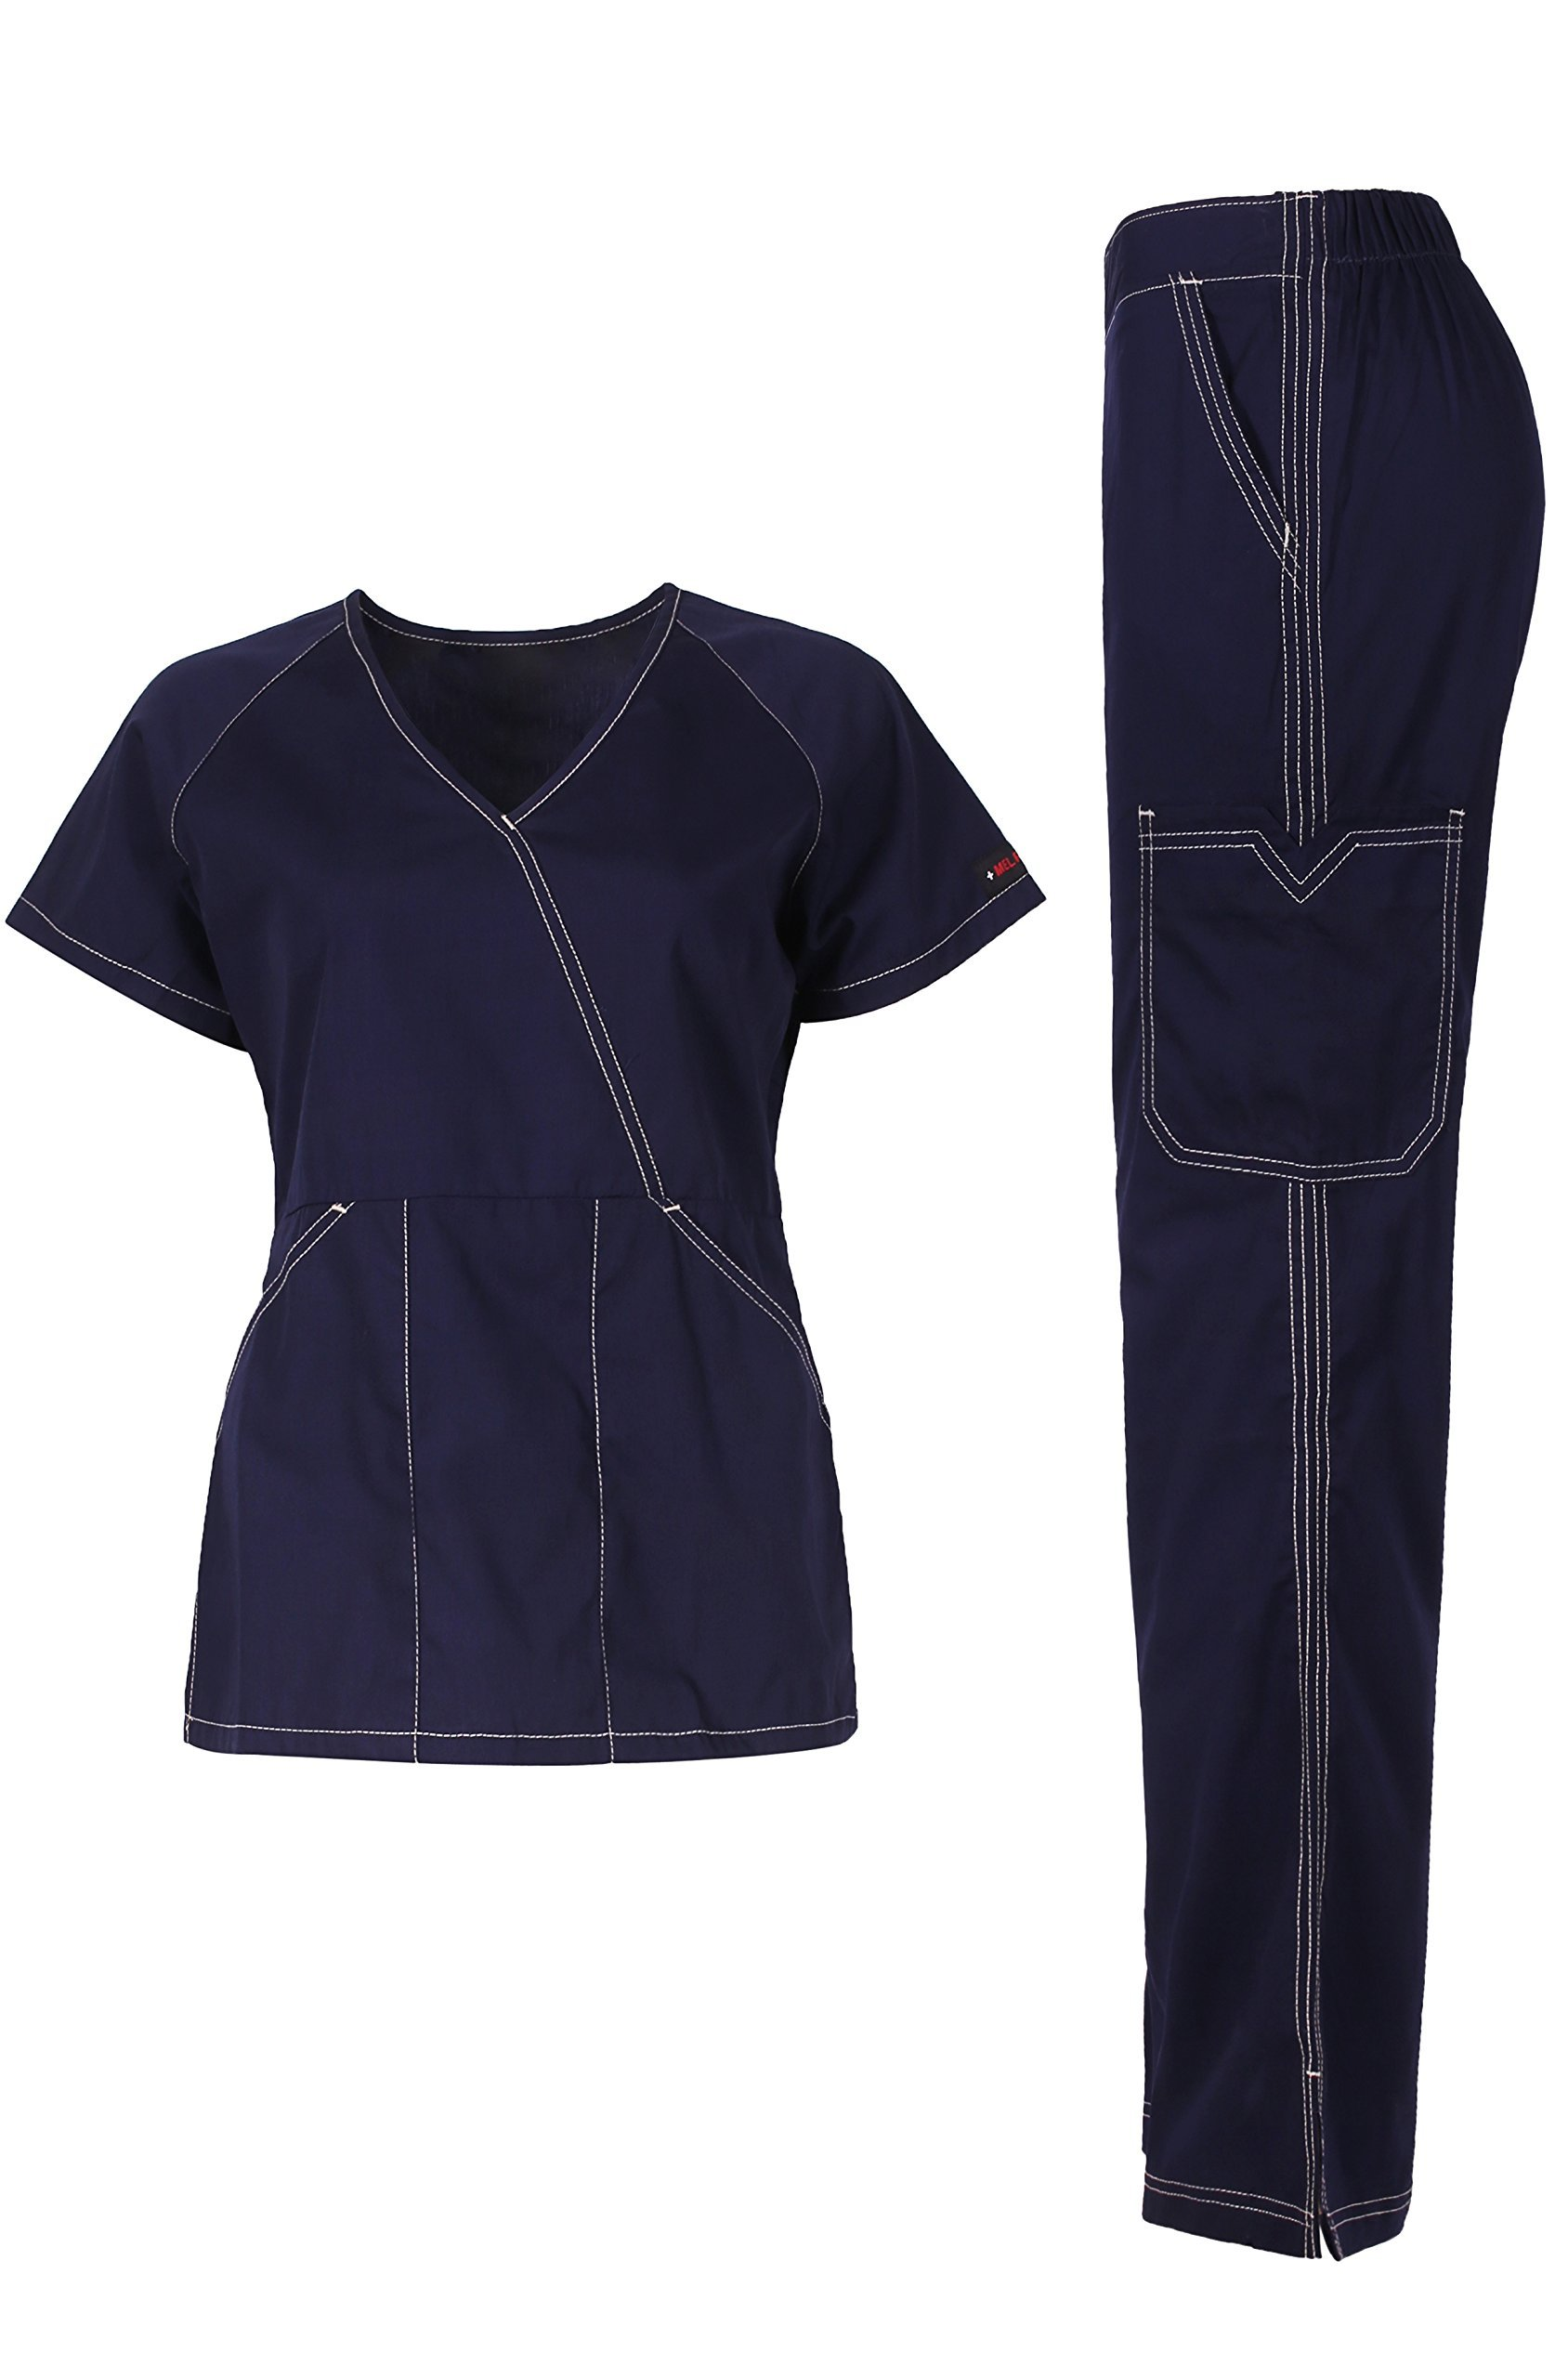 MedPro Women's Medical Scrub Set (Top & Bottom) Navy XL (5666)